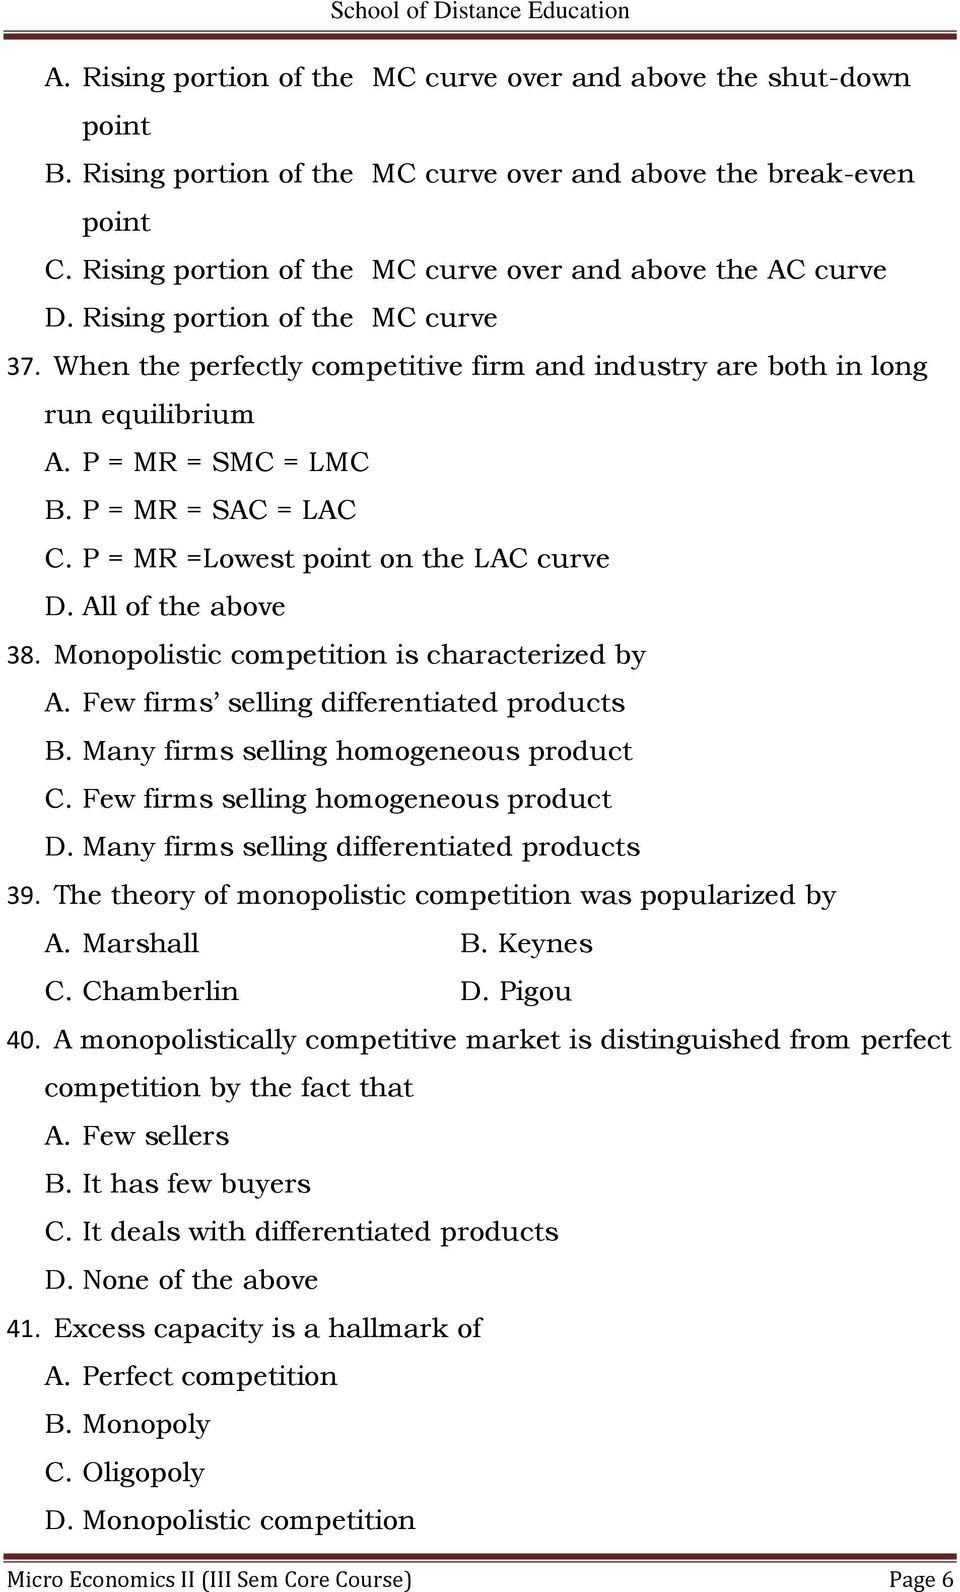 P = MR = SMC = LMC B. P = MR = SAC = LAC C. P = MR =Lowest point on the LAC curve D. All of the above 38. Monopolistic competition is characterized by A. Few firms selling differentiated products B.